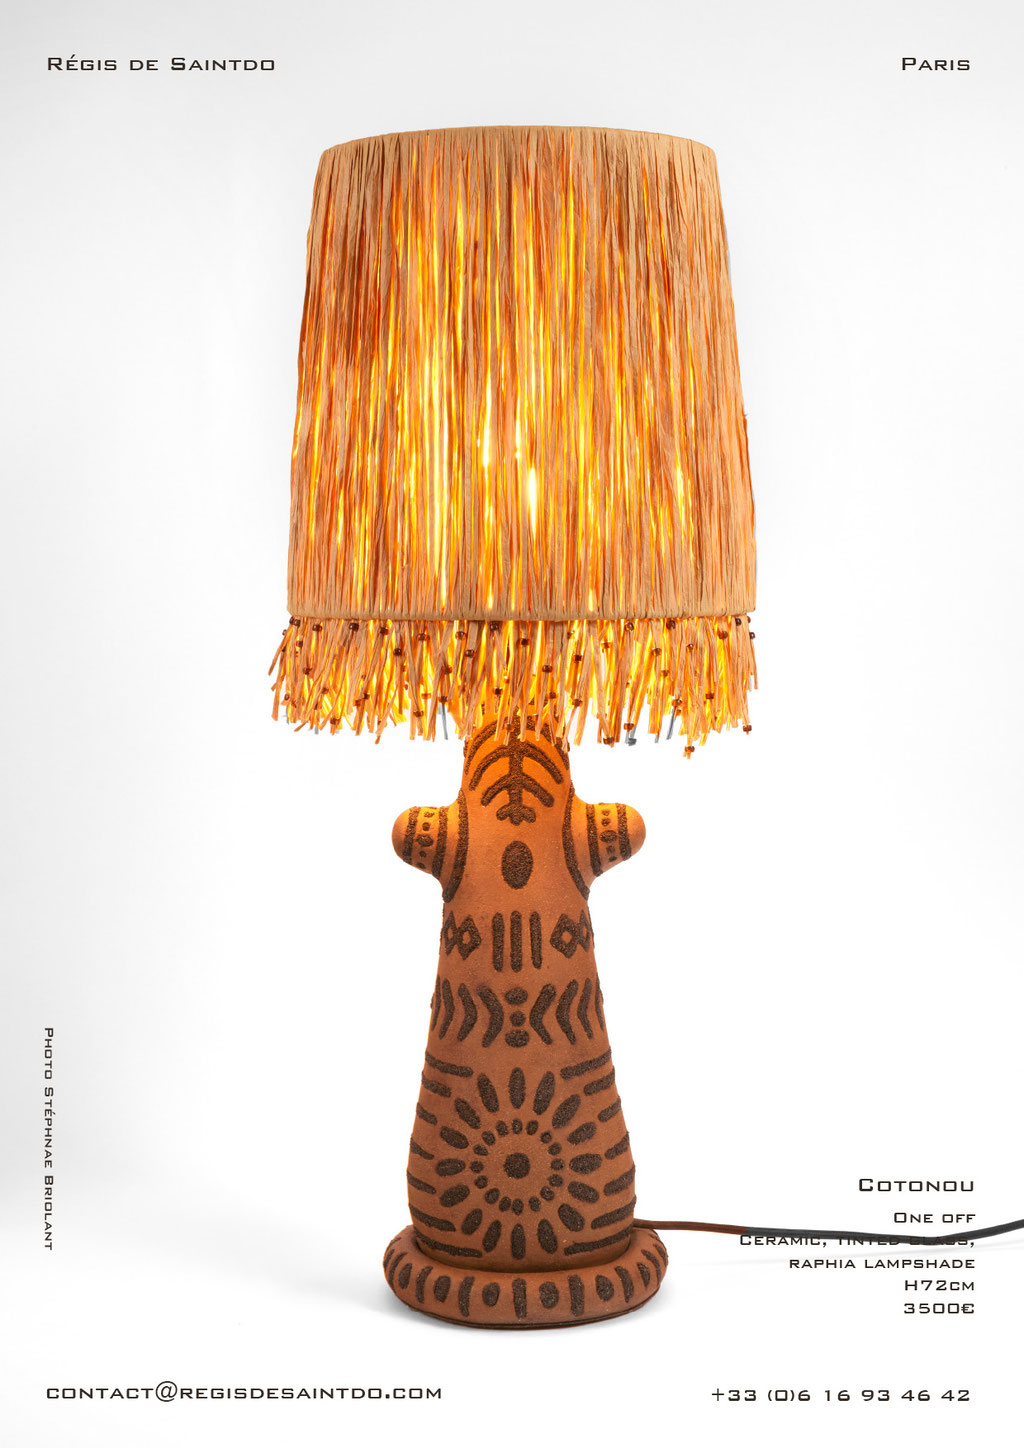 Lamp Cotonou - ceramic-tinted glass-raphia and glass beads lampshade- hand made-one off